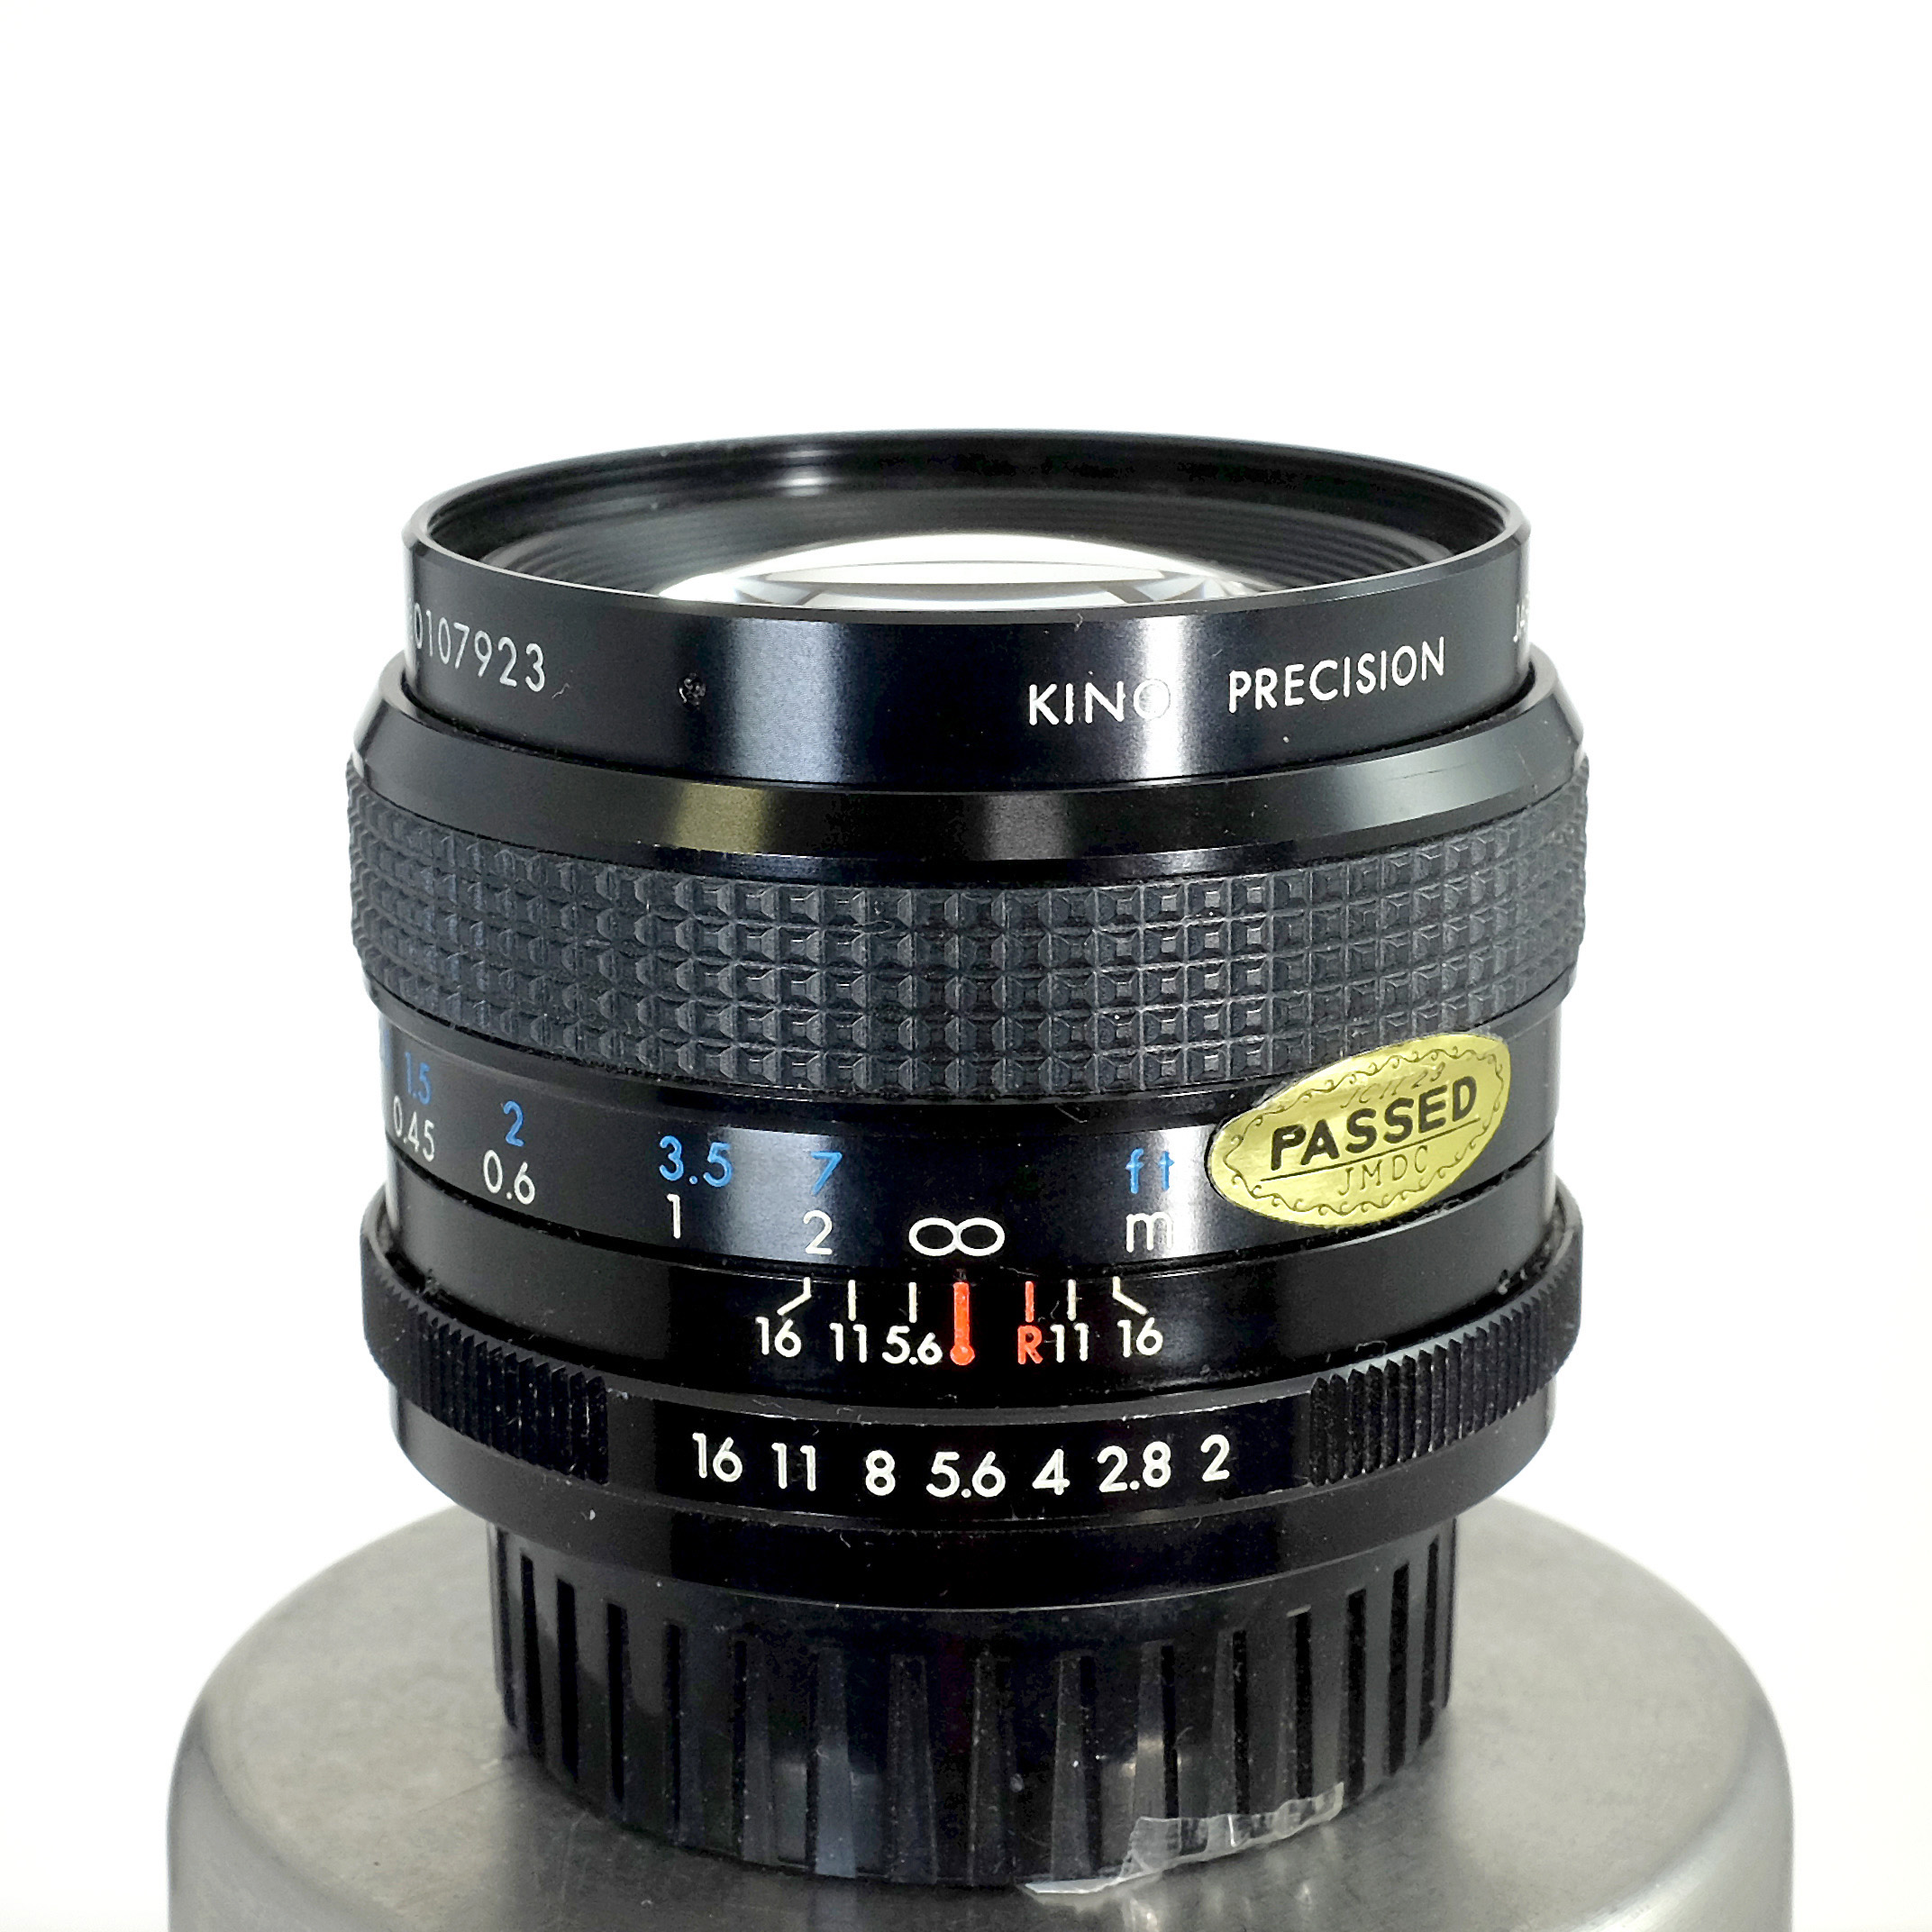 Kino Precision Japan Kiron 28mm f/2 Lens (Pentax K mount)